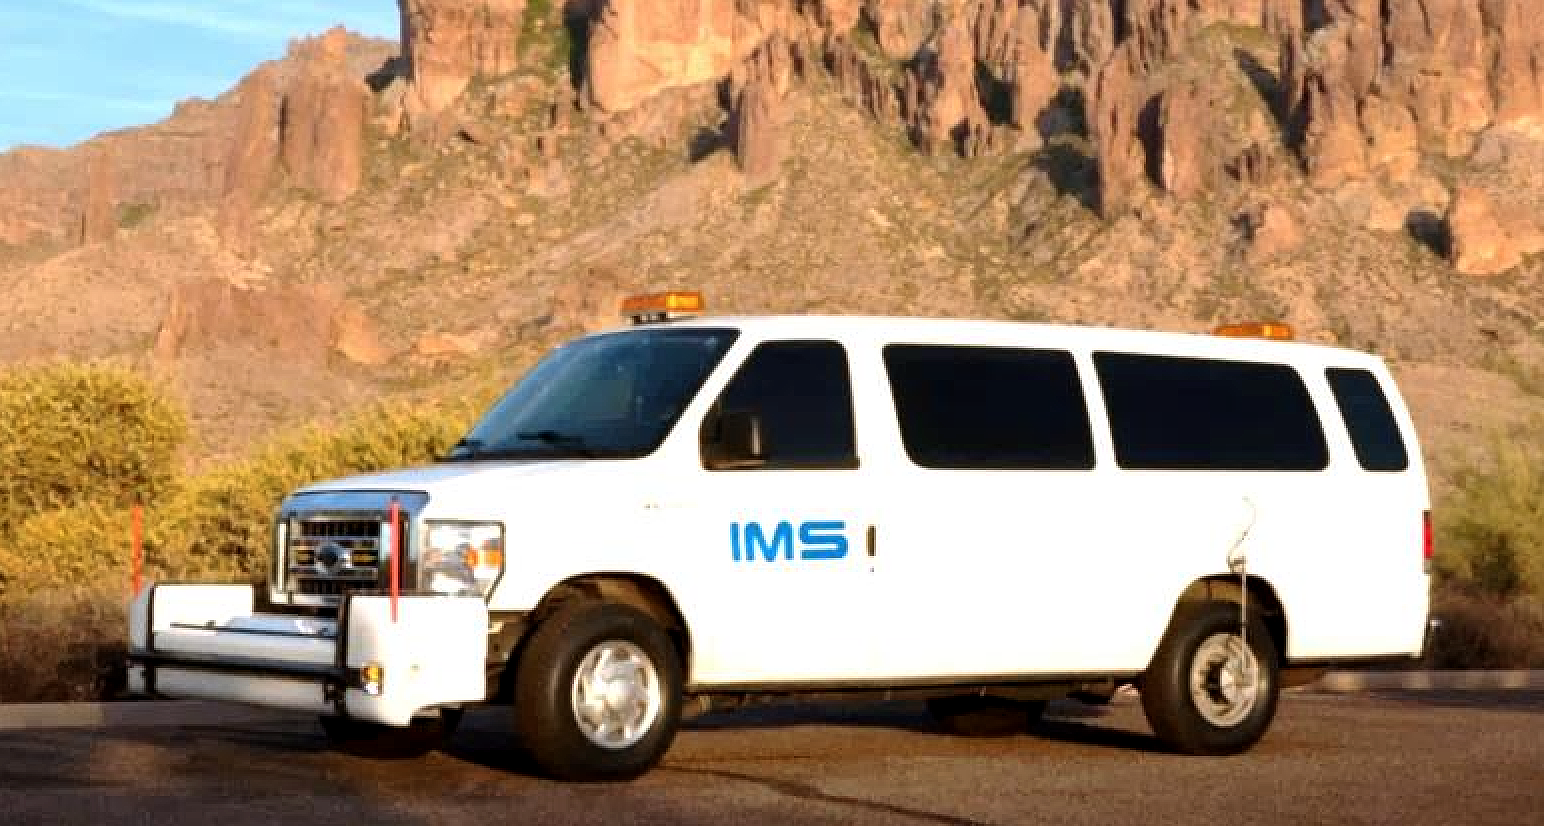 A van will help assess Marana roadways beginning Monday, March 18.